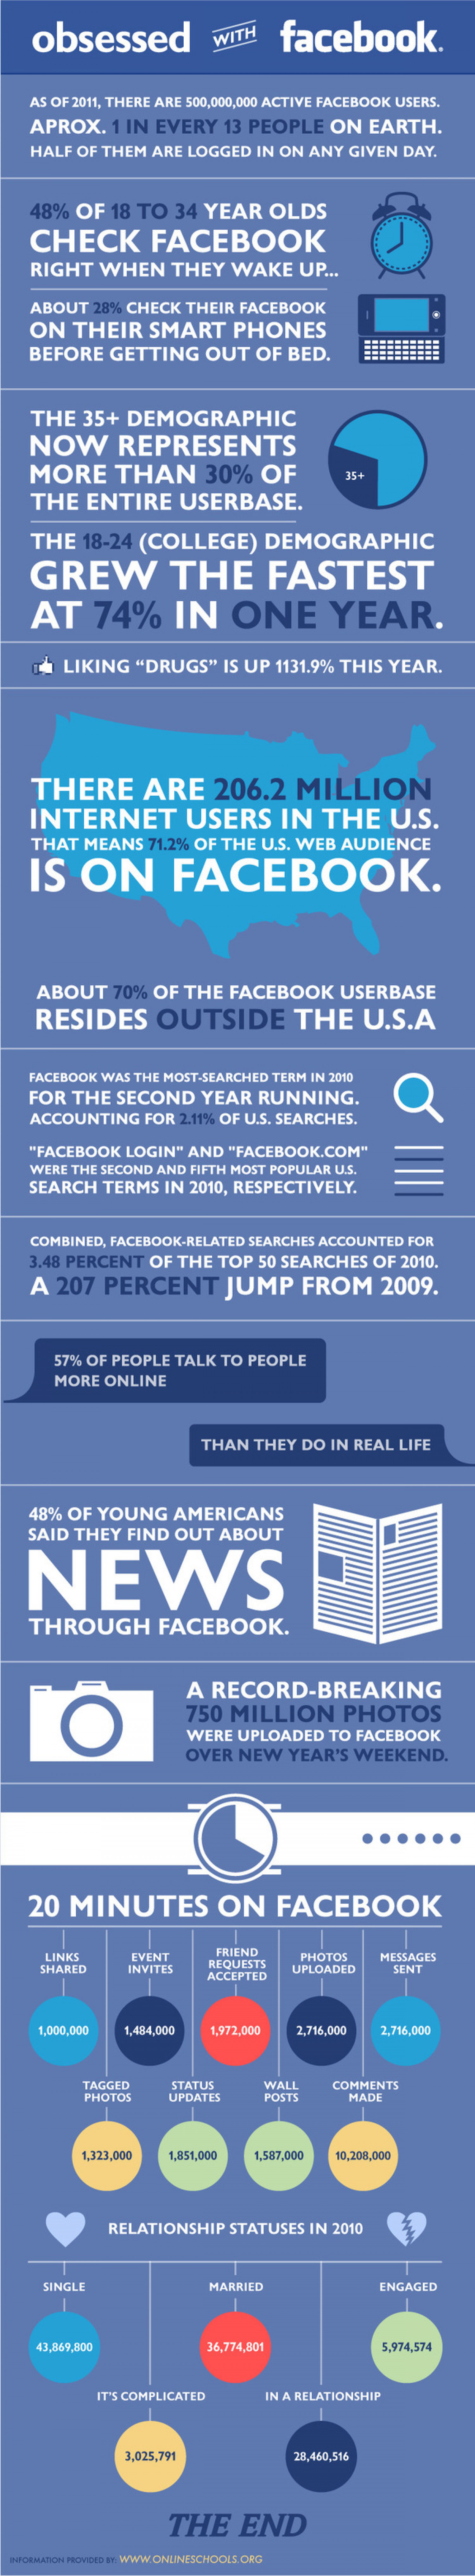 Facebook Addiction: Are We Obsessed? Infographic